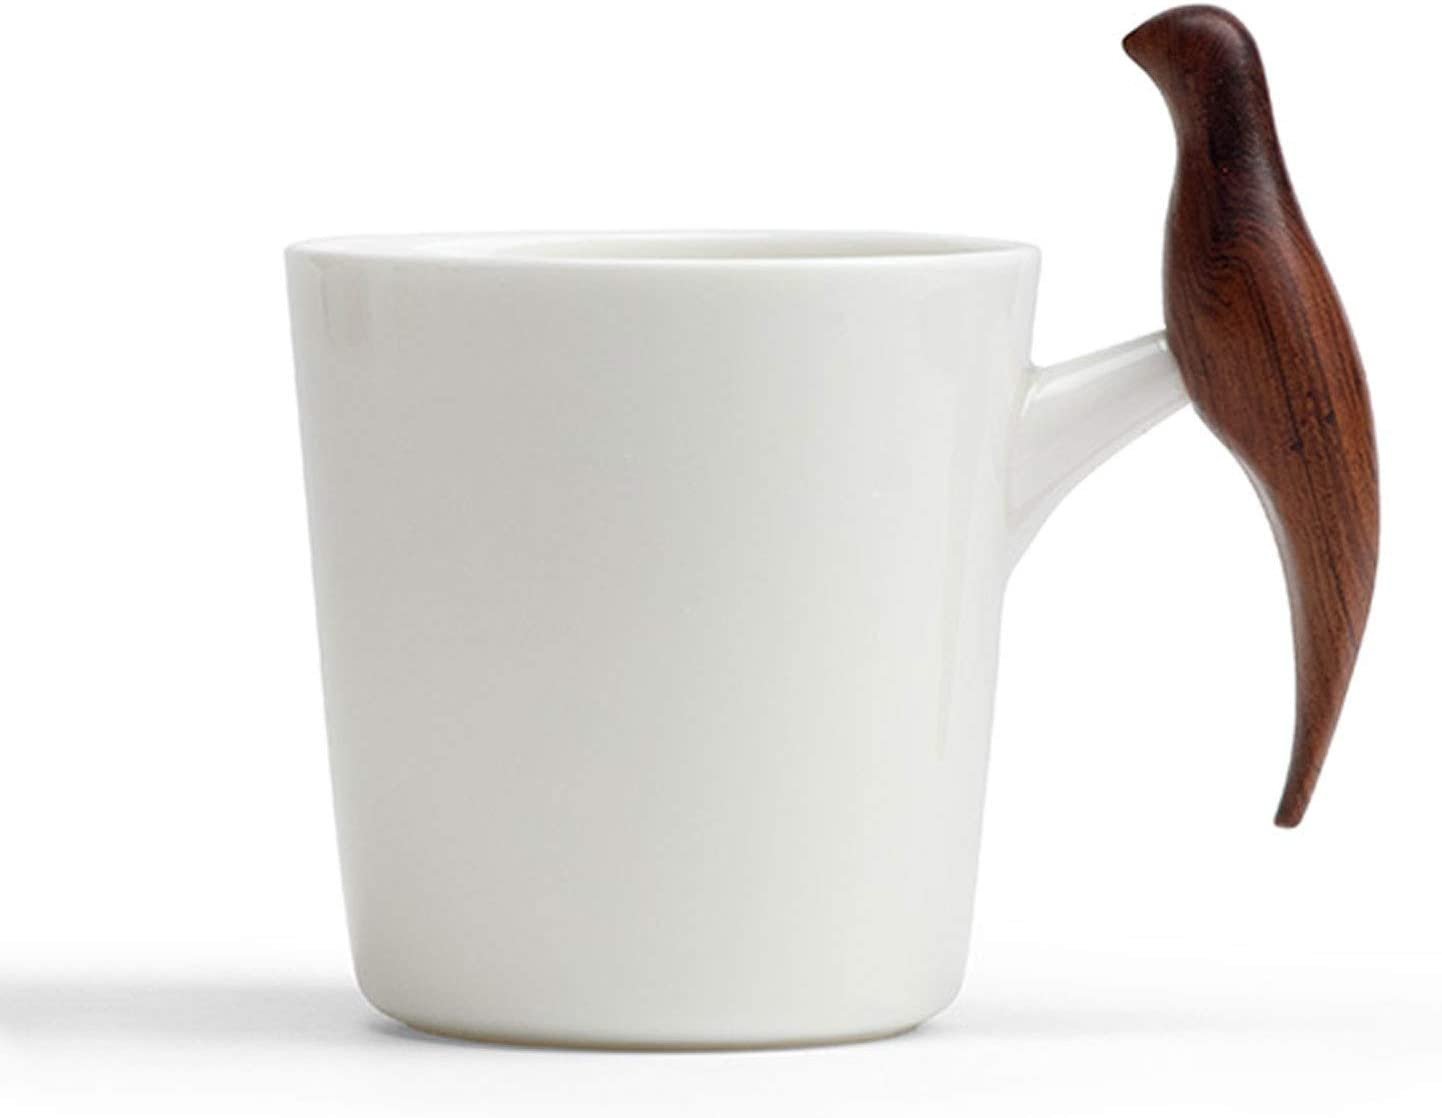 Coffee cup Novelty White Ceramic Mug Bird-shaped Woo with Seattle Mall Oakland Mall